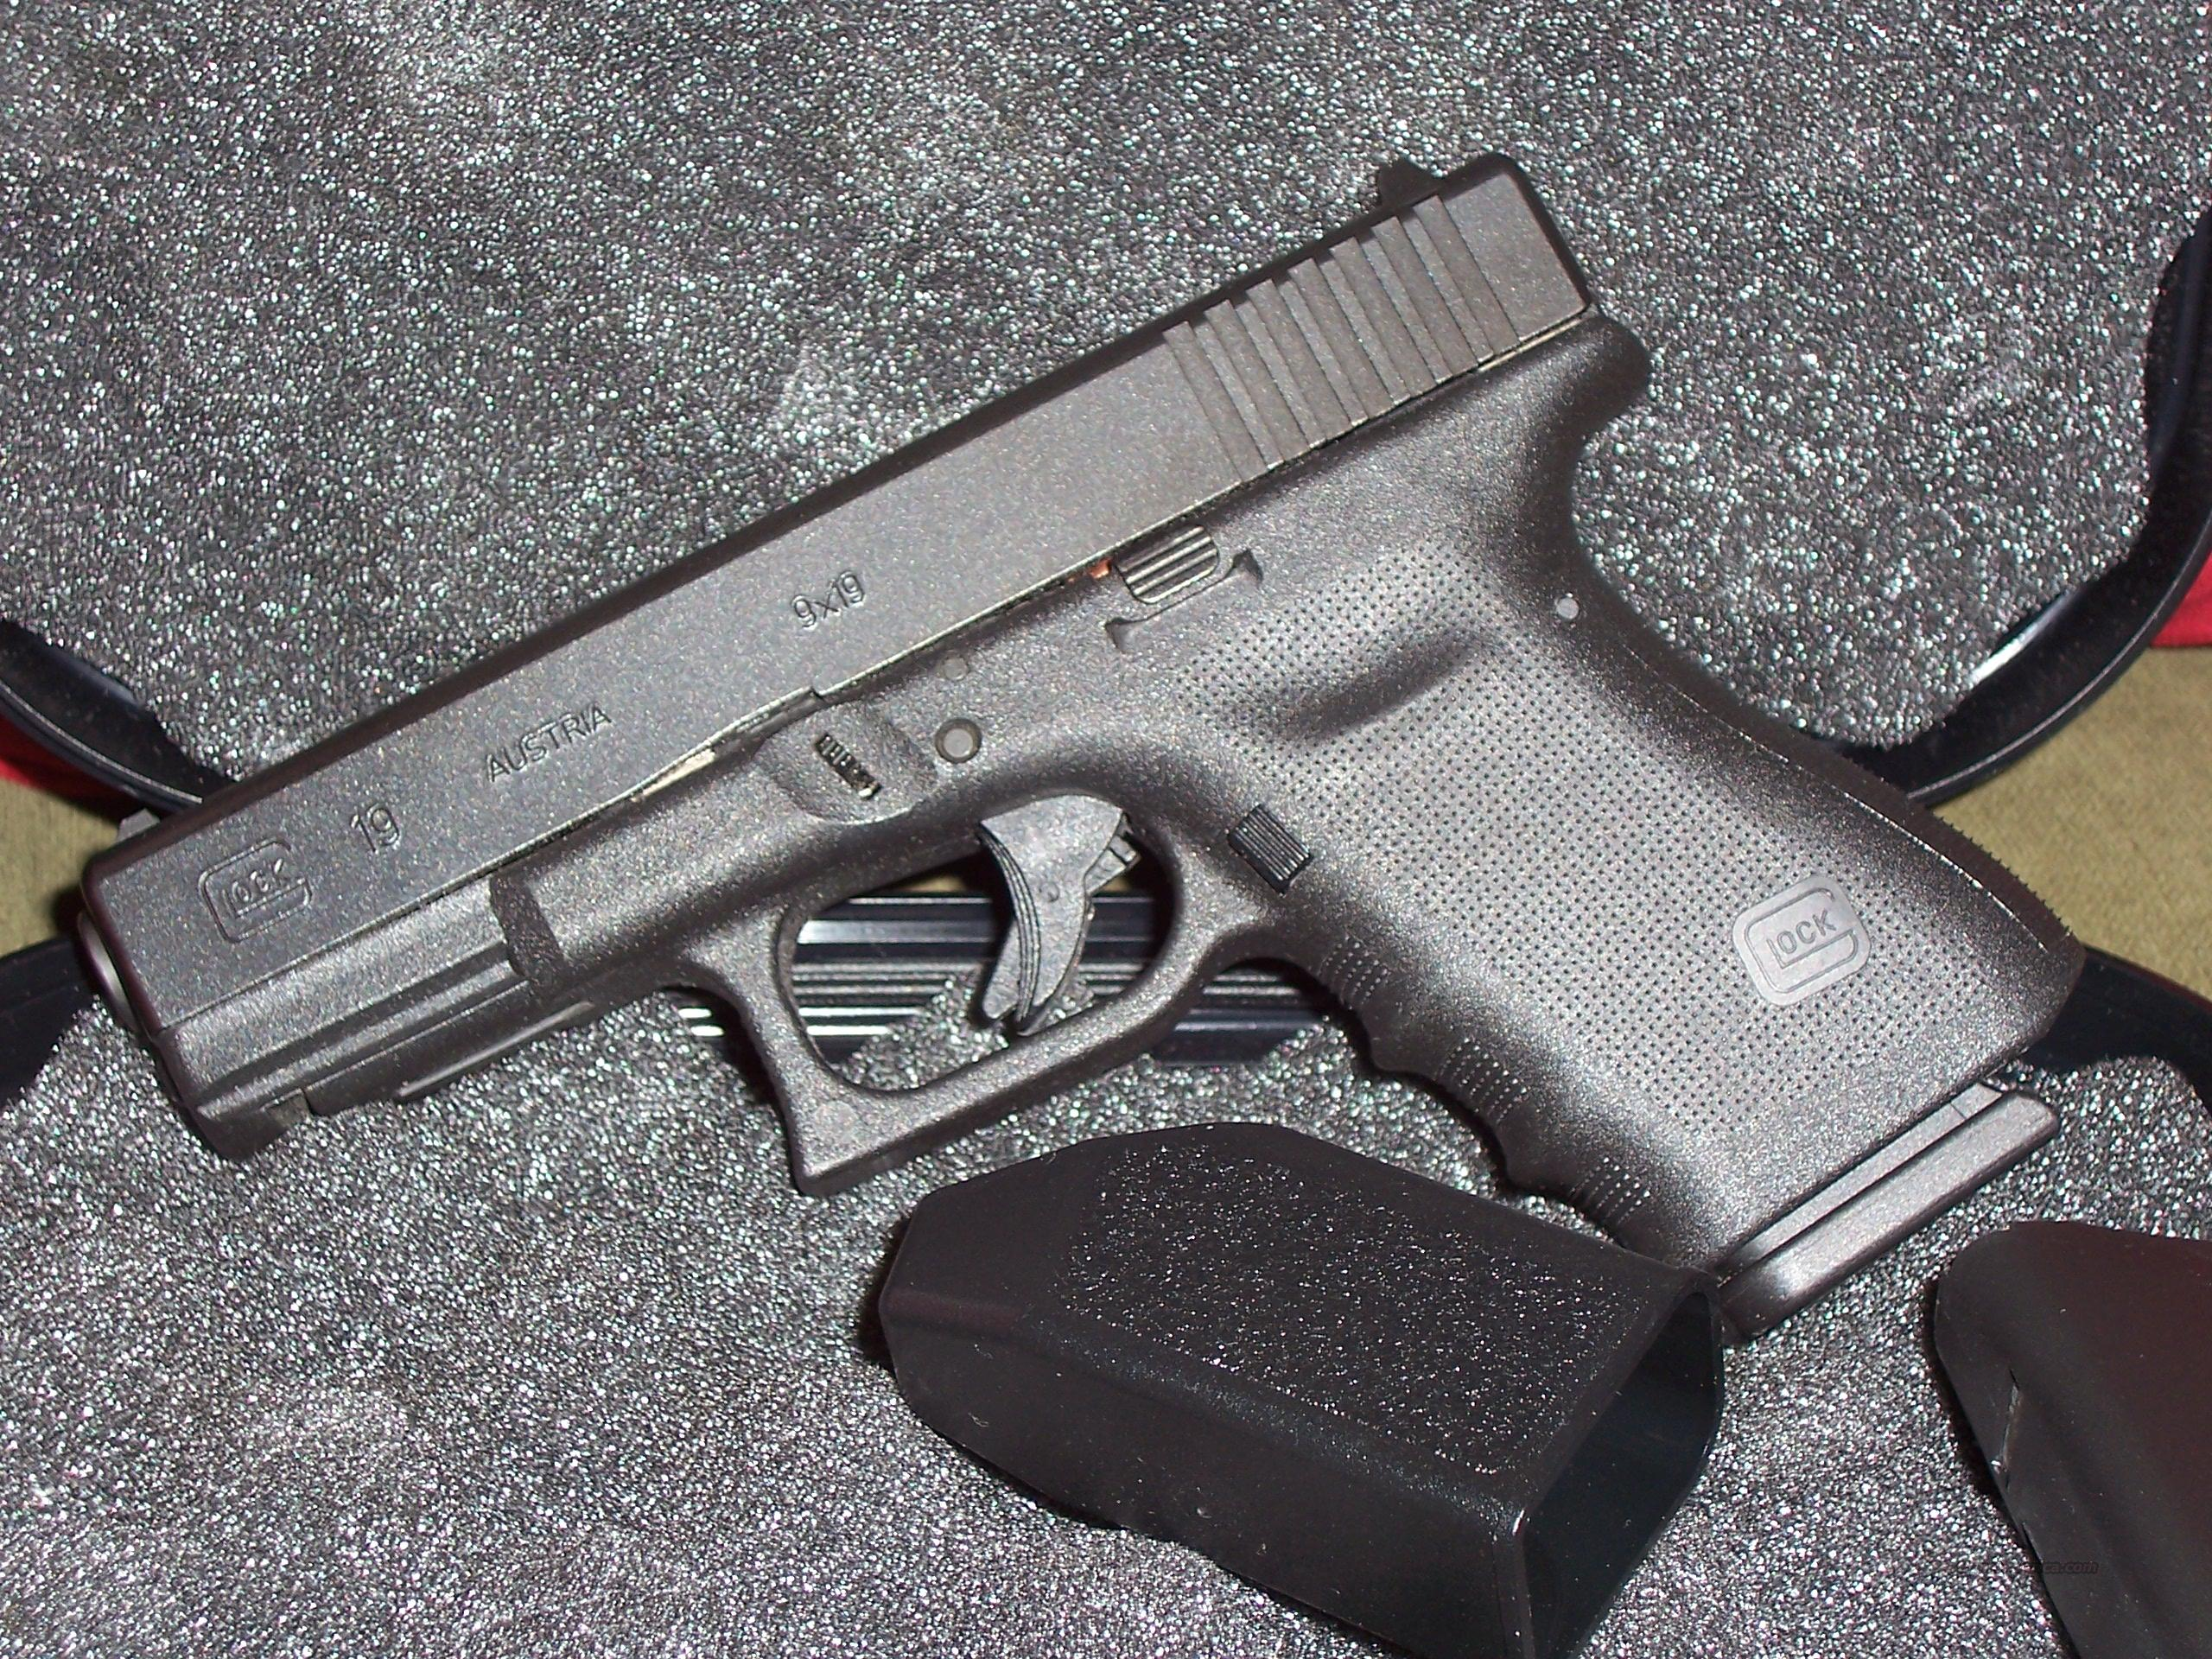 GLOCK MODEL 19  9X19 mm  Guns > Pistols > Glock Pistols > 19